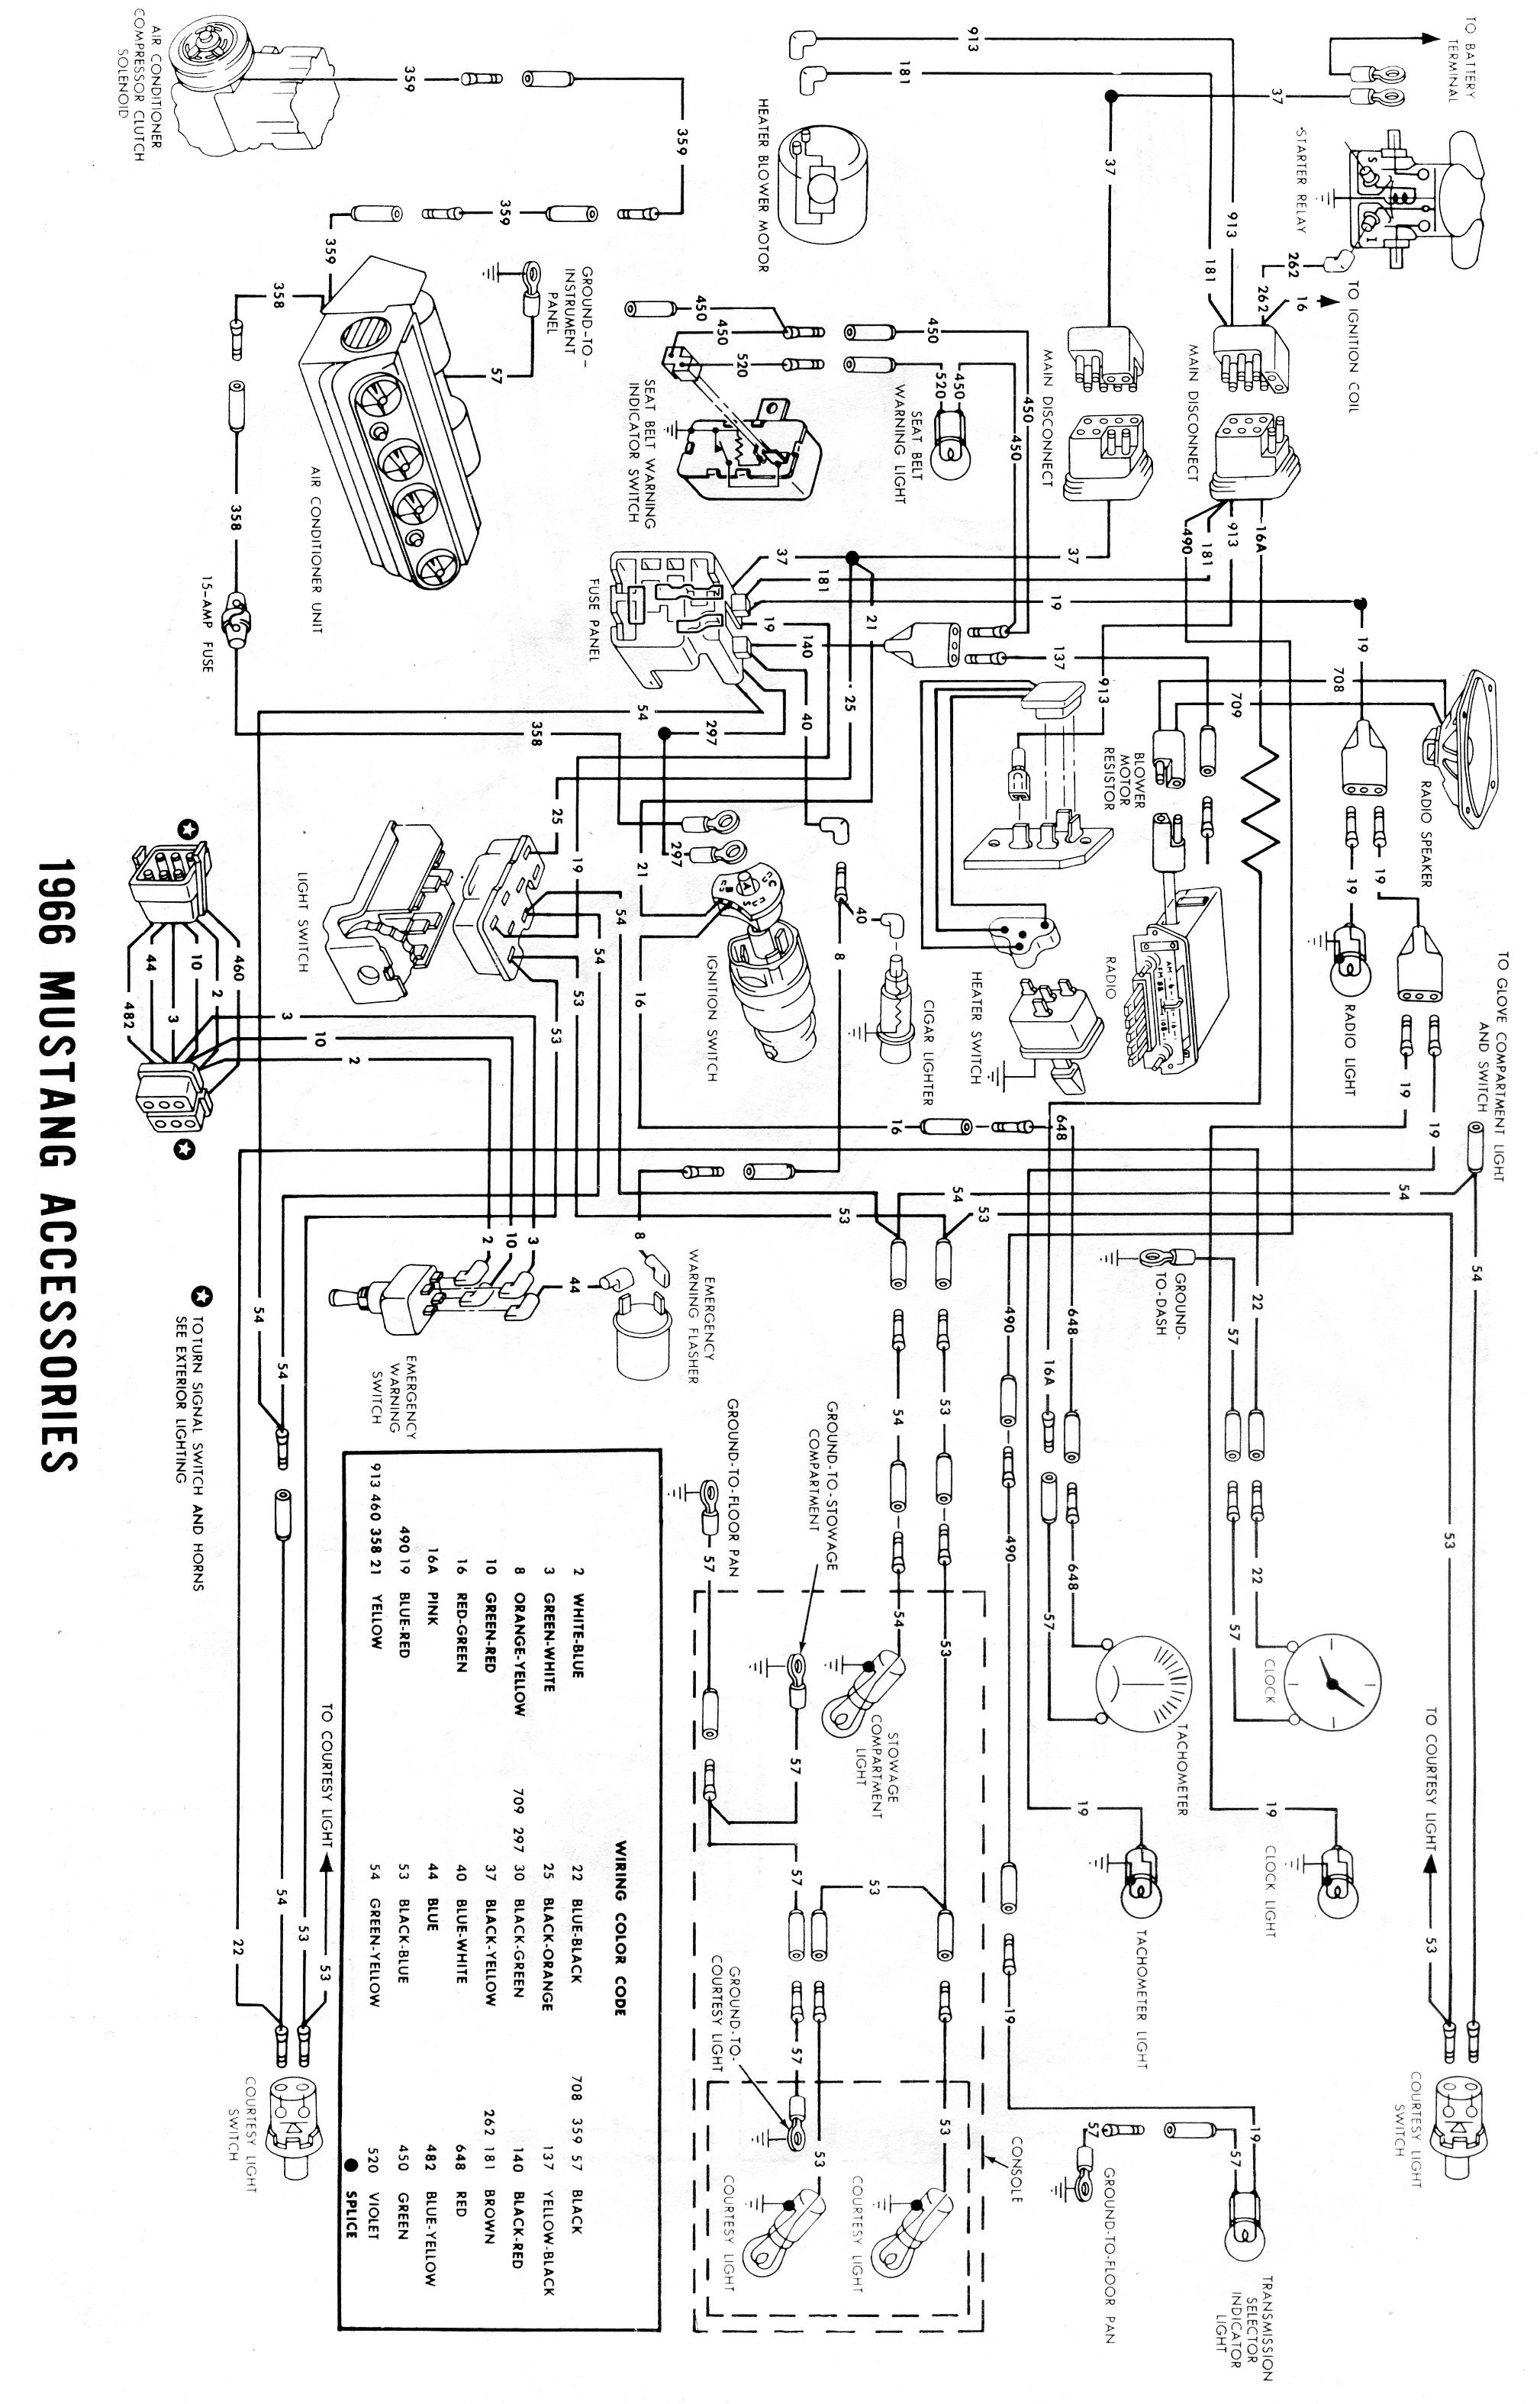 Instrument Cluster Wiring Diagram 33 Images Car Horn Schematic On 1969 112954d1286846513 Why Does My Fuse Keep Blowing Out Mustang 300dpi003 Panel